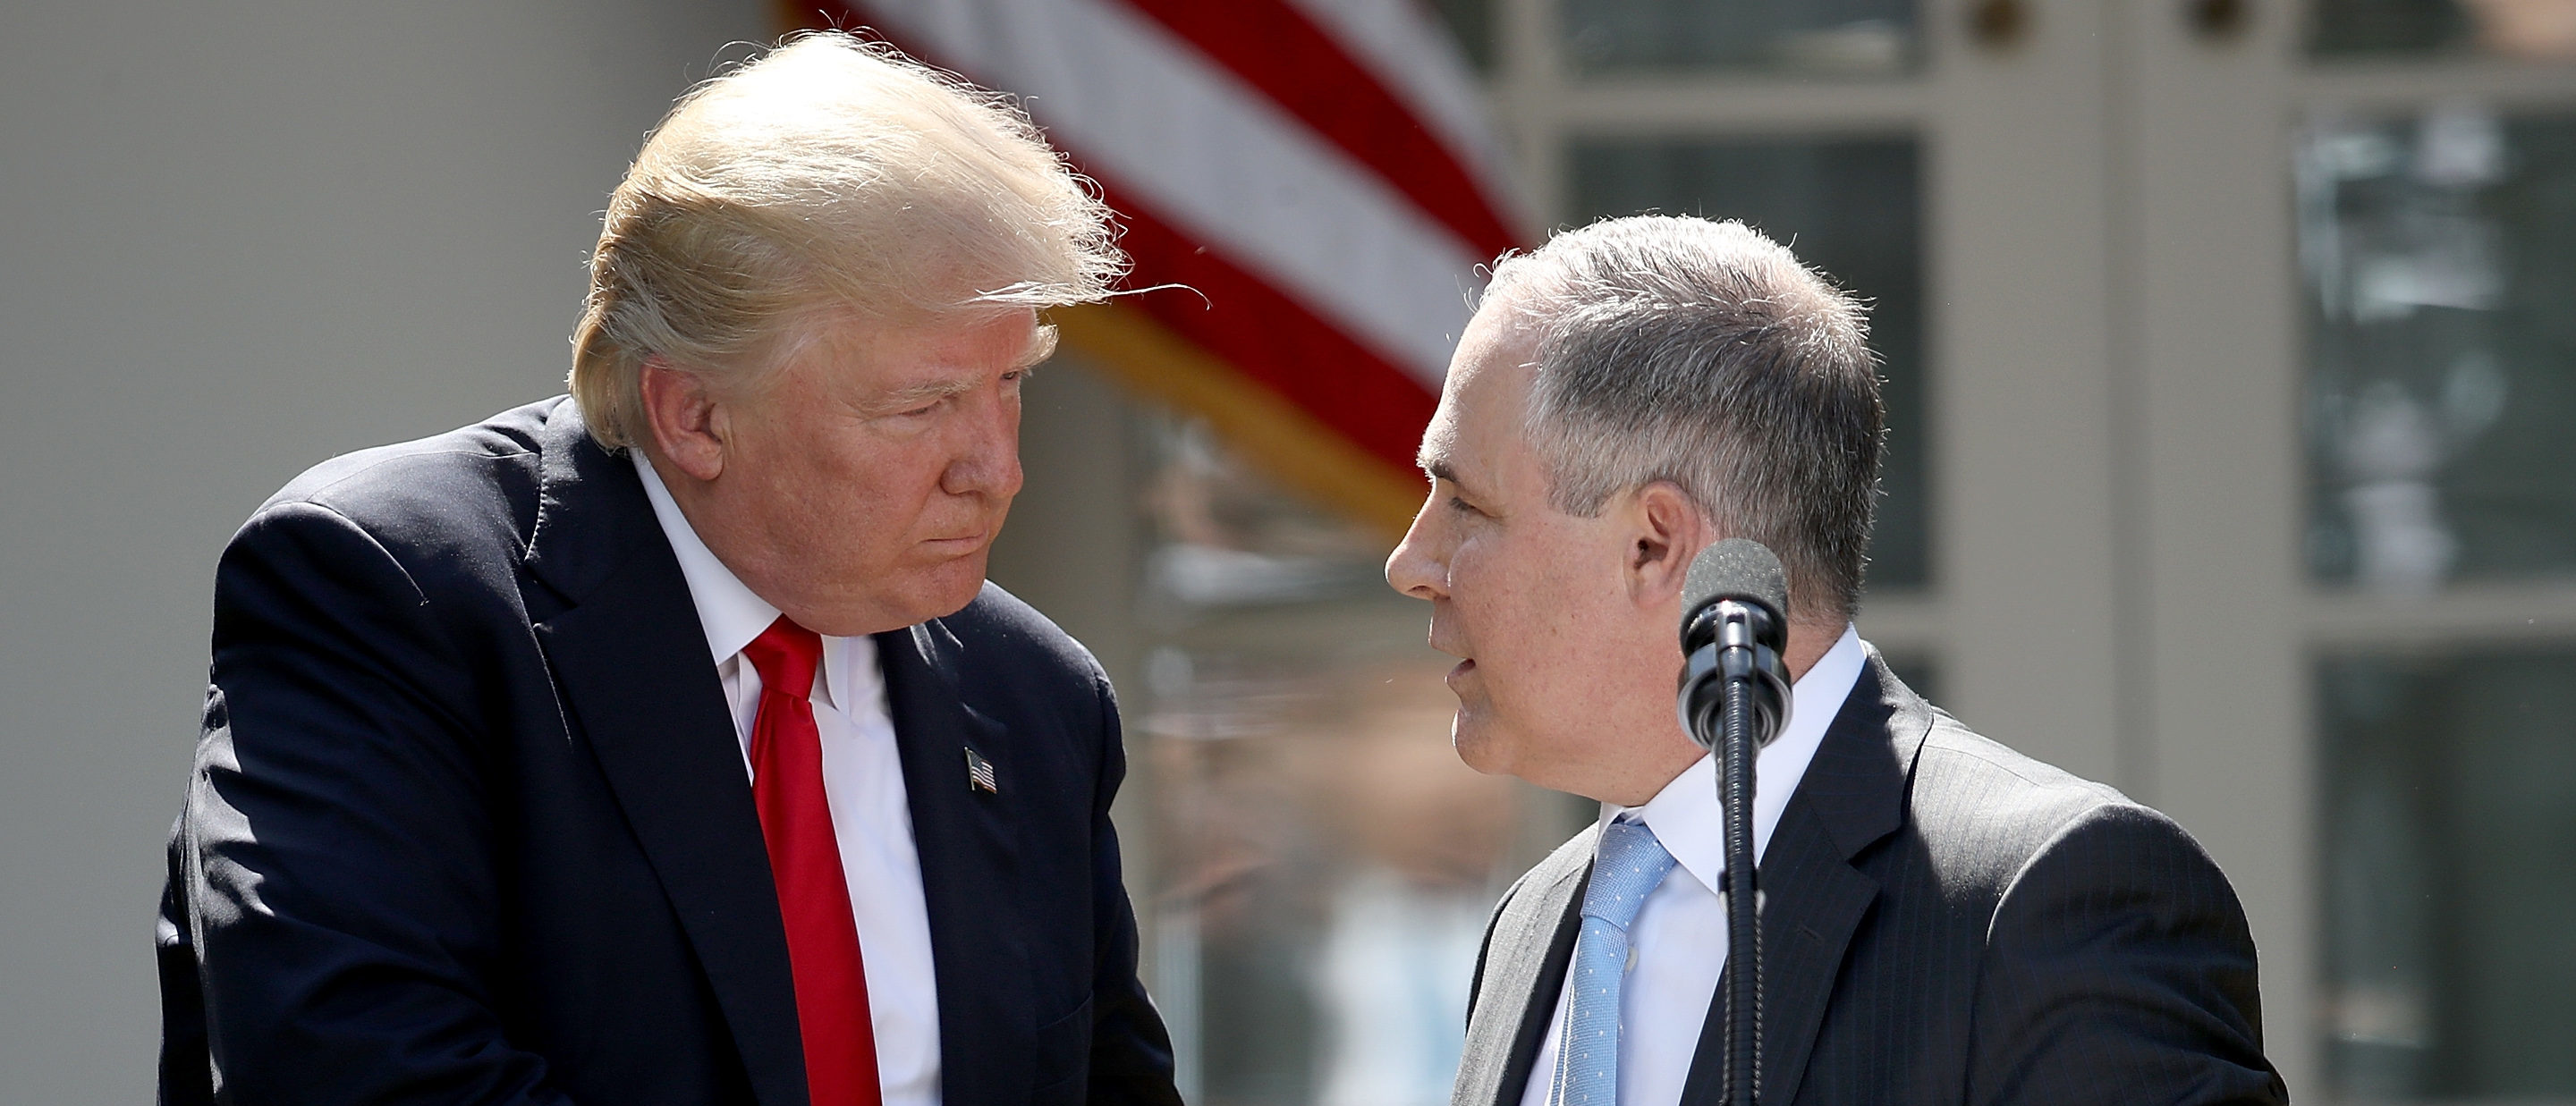 WASHINGTON, DC - JUNE 01: U.S. President Donald Trump shakes hands with EPA Administrator Scott Pruitt after announcing his decision for the United States to pull out of the Paris climate agreement in the Rose Garden at the White House June 1, 2017 in Washington, DC. Trump pledged on the campaign trail to withdraw from the accord, which former President Barack Obama and the leaders of 194 other countries signed in 2015. The agreement is intended to encourage the reduction of greenhouse gas emissions in an effort to limit global warming to a manageable level. (Photo by Win McNamee/Getty Images)